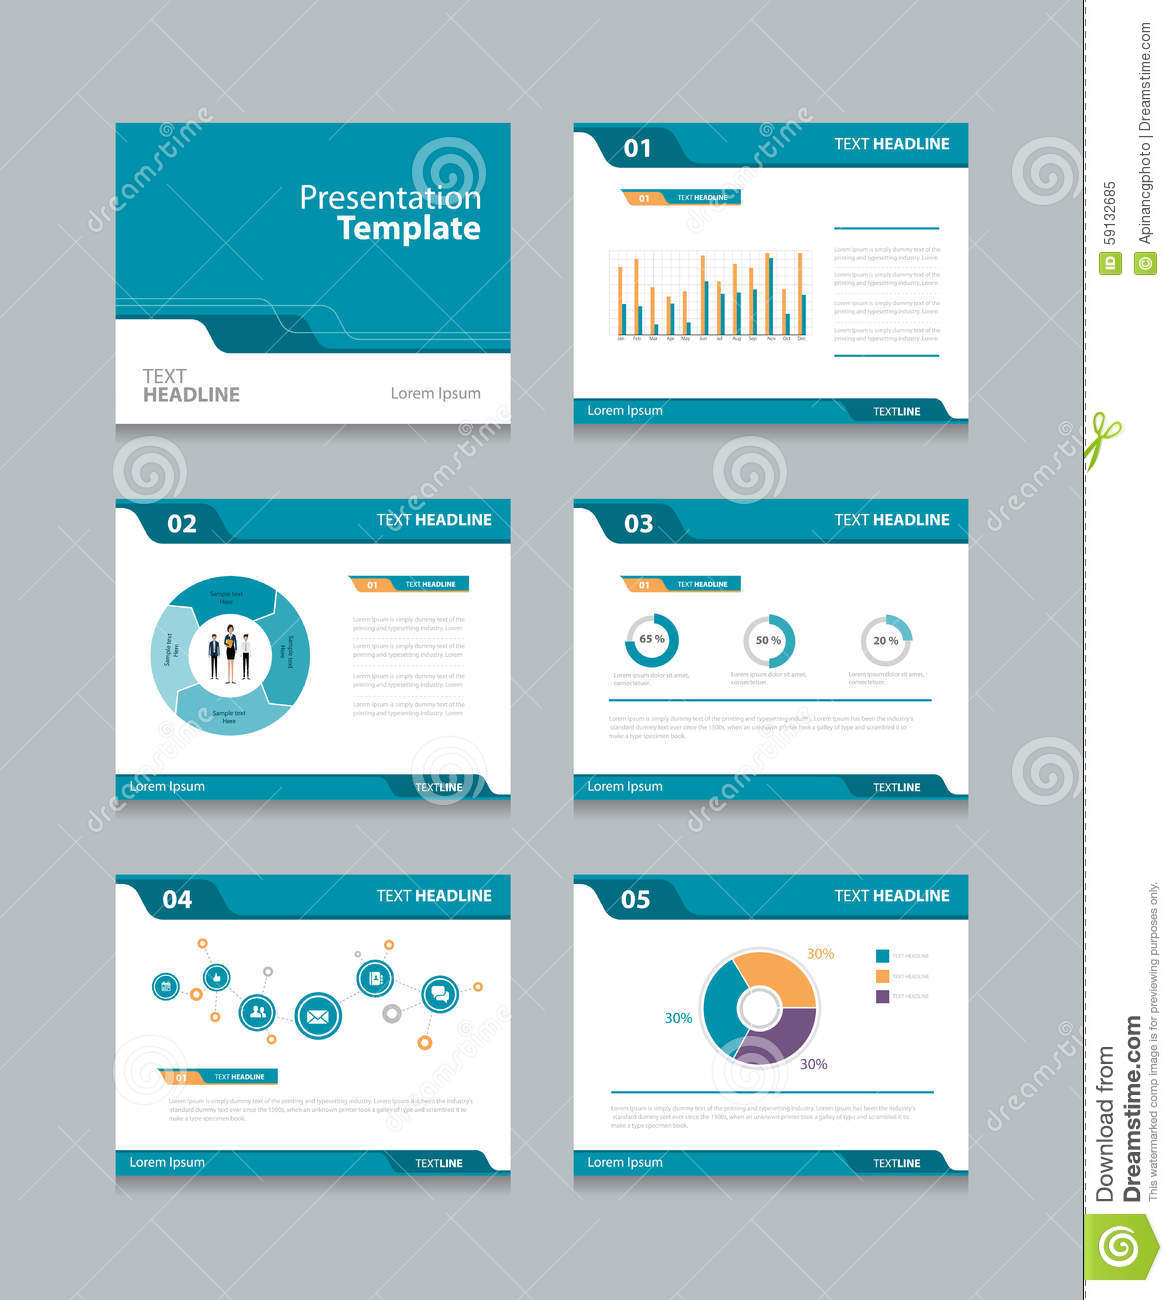 Vector Template Presentation Slides Background Design.info Graphs And Charts  . Slides Design. Graph, Corporate.  Graphs And Charts Templates